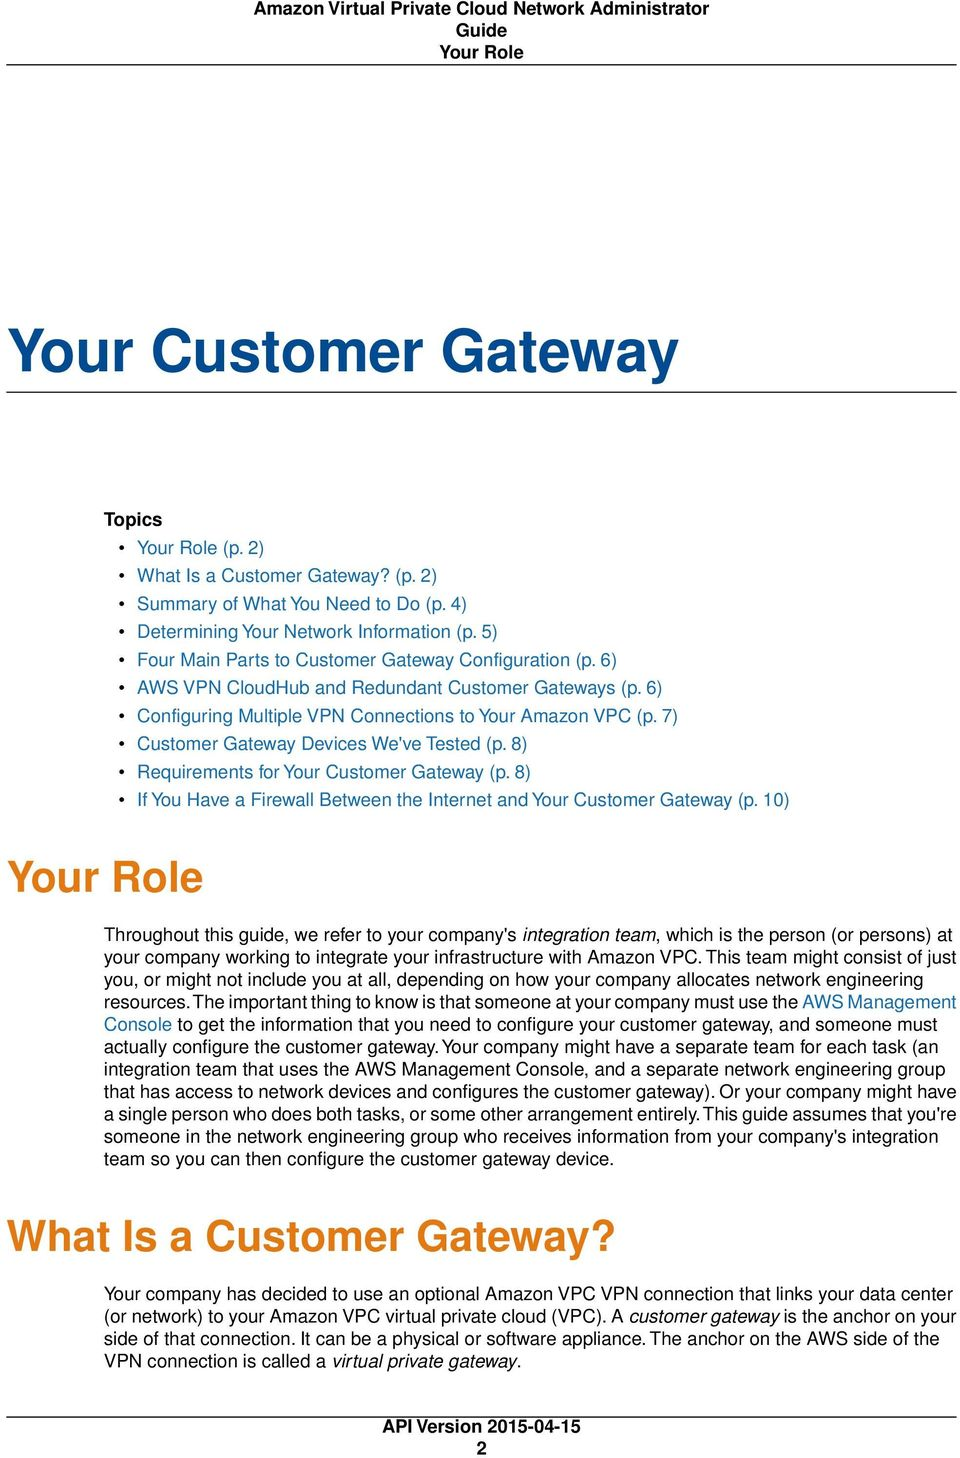 hight resolution of 7 customer gateway devices we ve tested p 8 requirements for